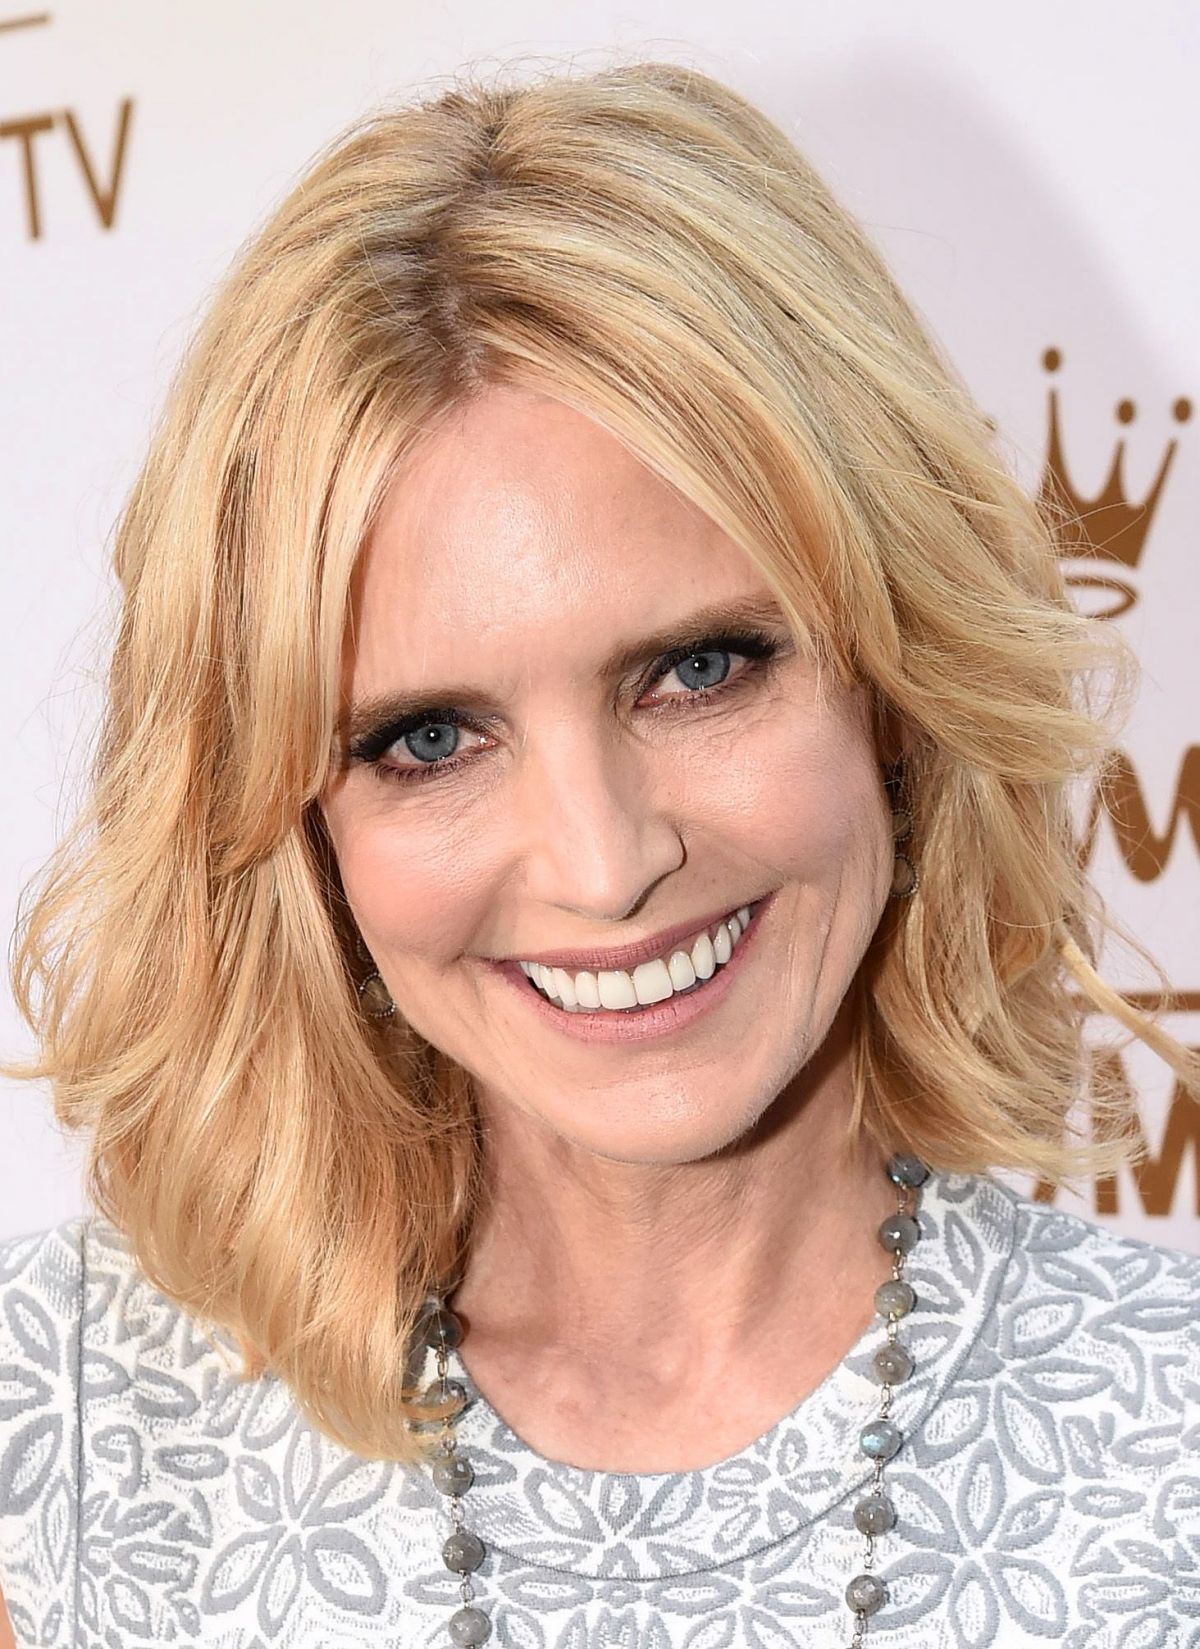 Courtney Thorne-Smith At Hallmark Evening event, TCA